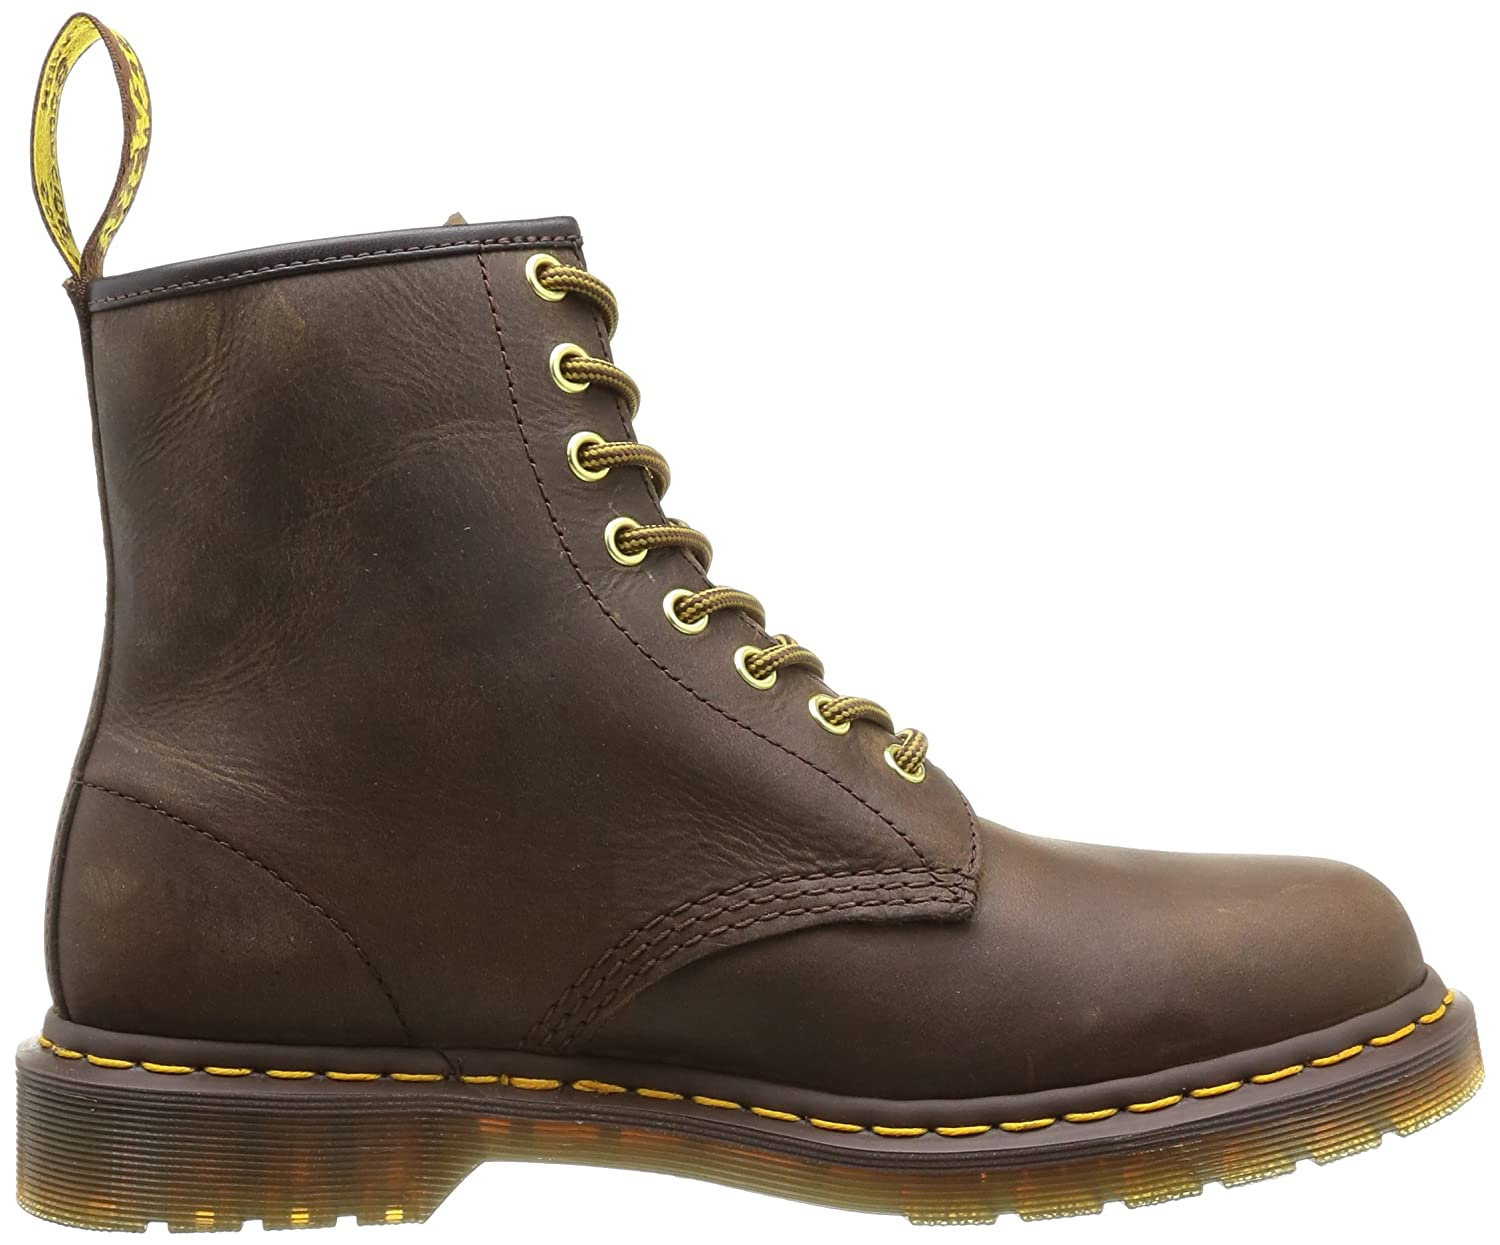 Dr. Martens Men's 1460 Combat Boot, 8.5 B(M) US Women/7.5 D(M) US Men B000NG6T9W 11 F(M) UK / 13 B(M) US Women / 12 D(M) US Men|Aztec Crazyhorse Leather